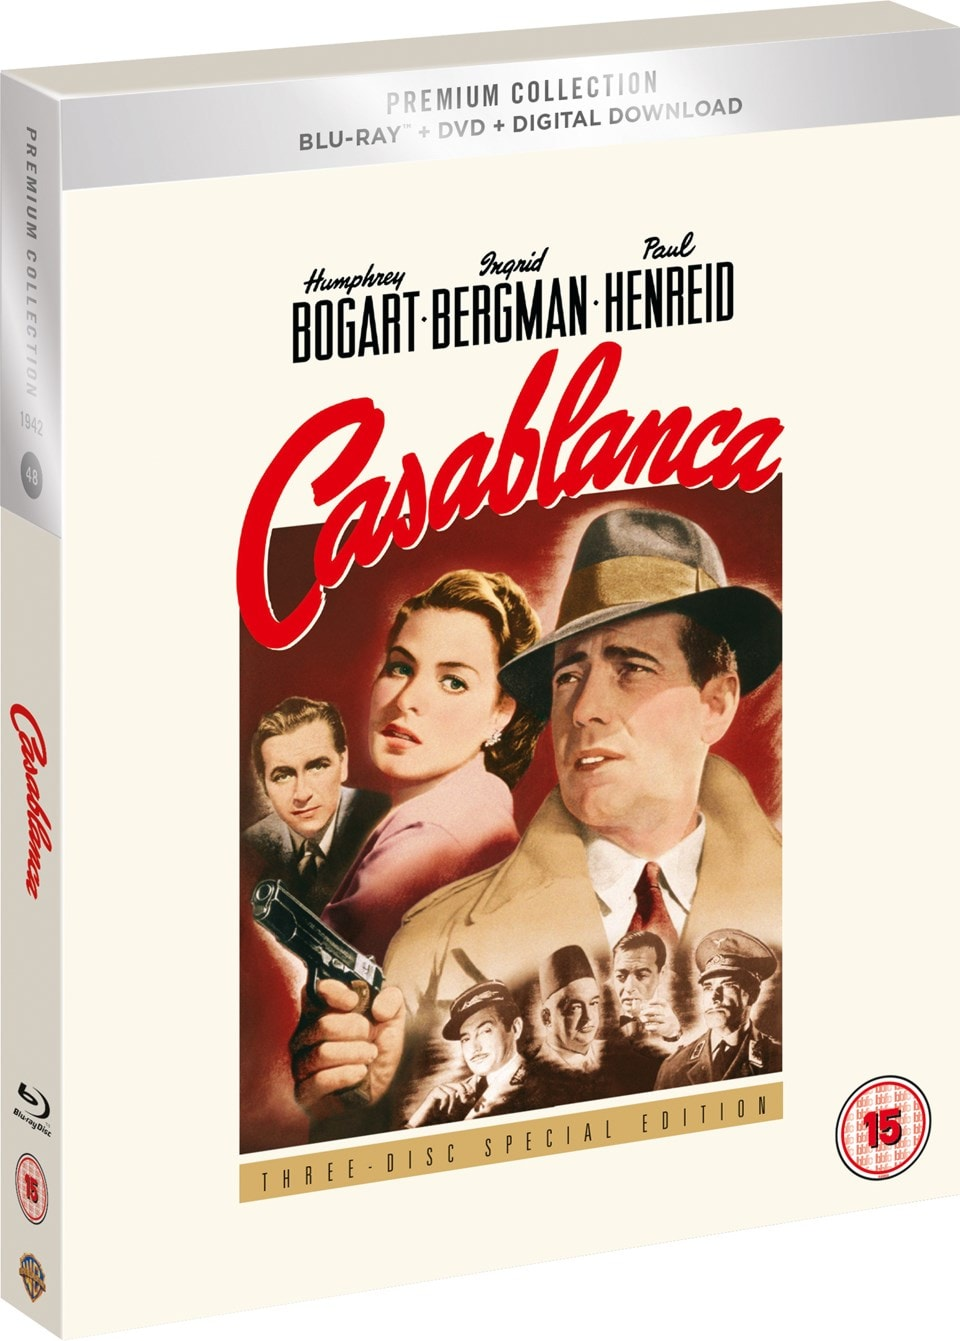 Casablanca (hmv Exclusive) - The Premium Collection - 2